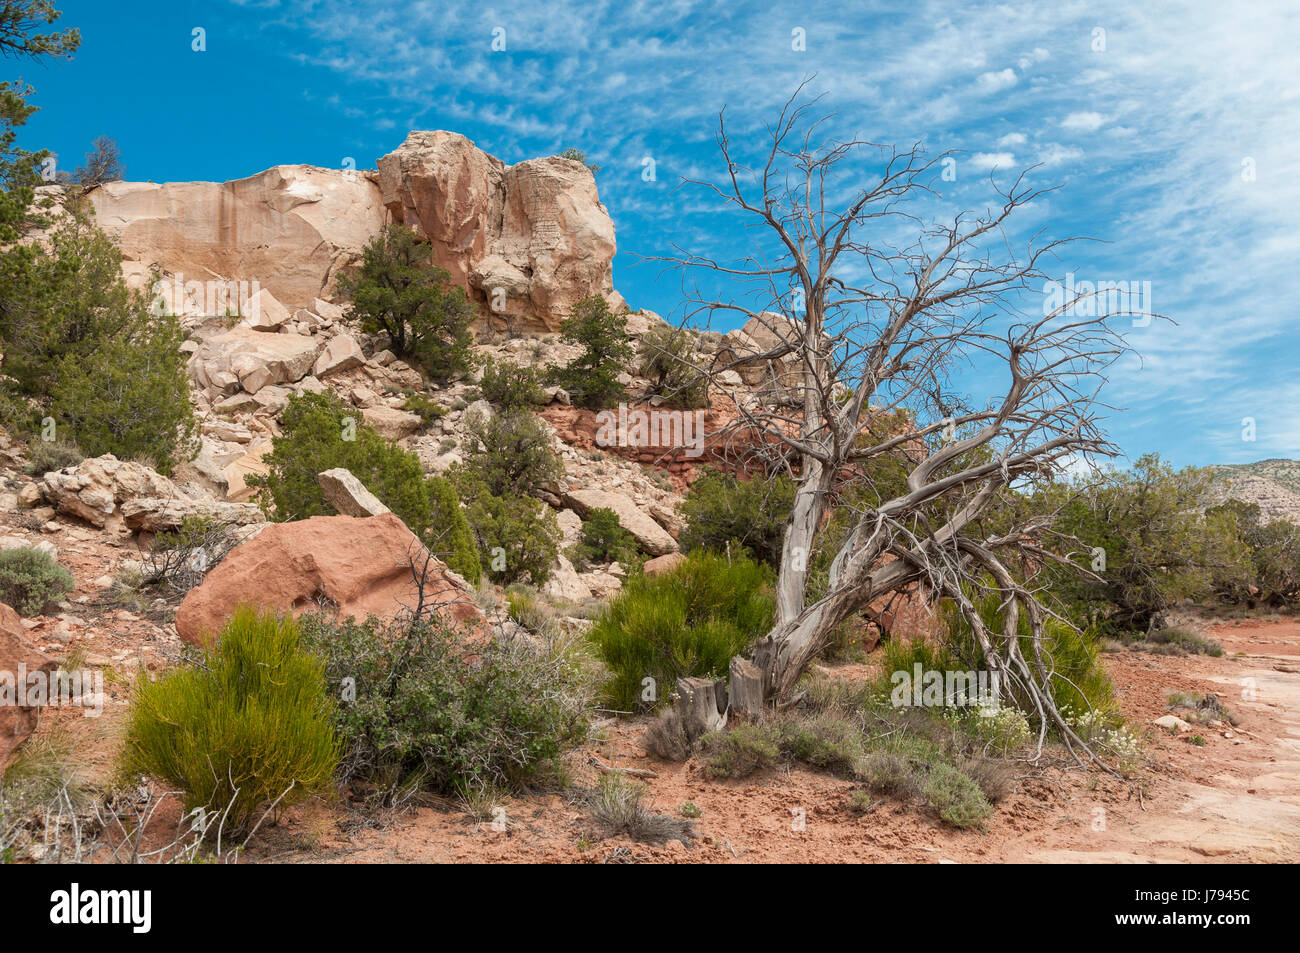 Sand Canyon Trail, Canyons of the Ancients National Monument northwest of Cortez, Colorado. - Stock Image